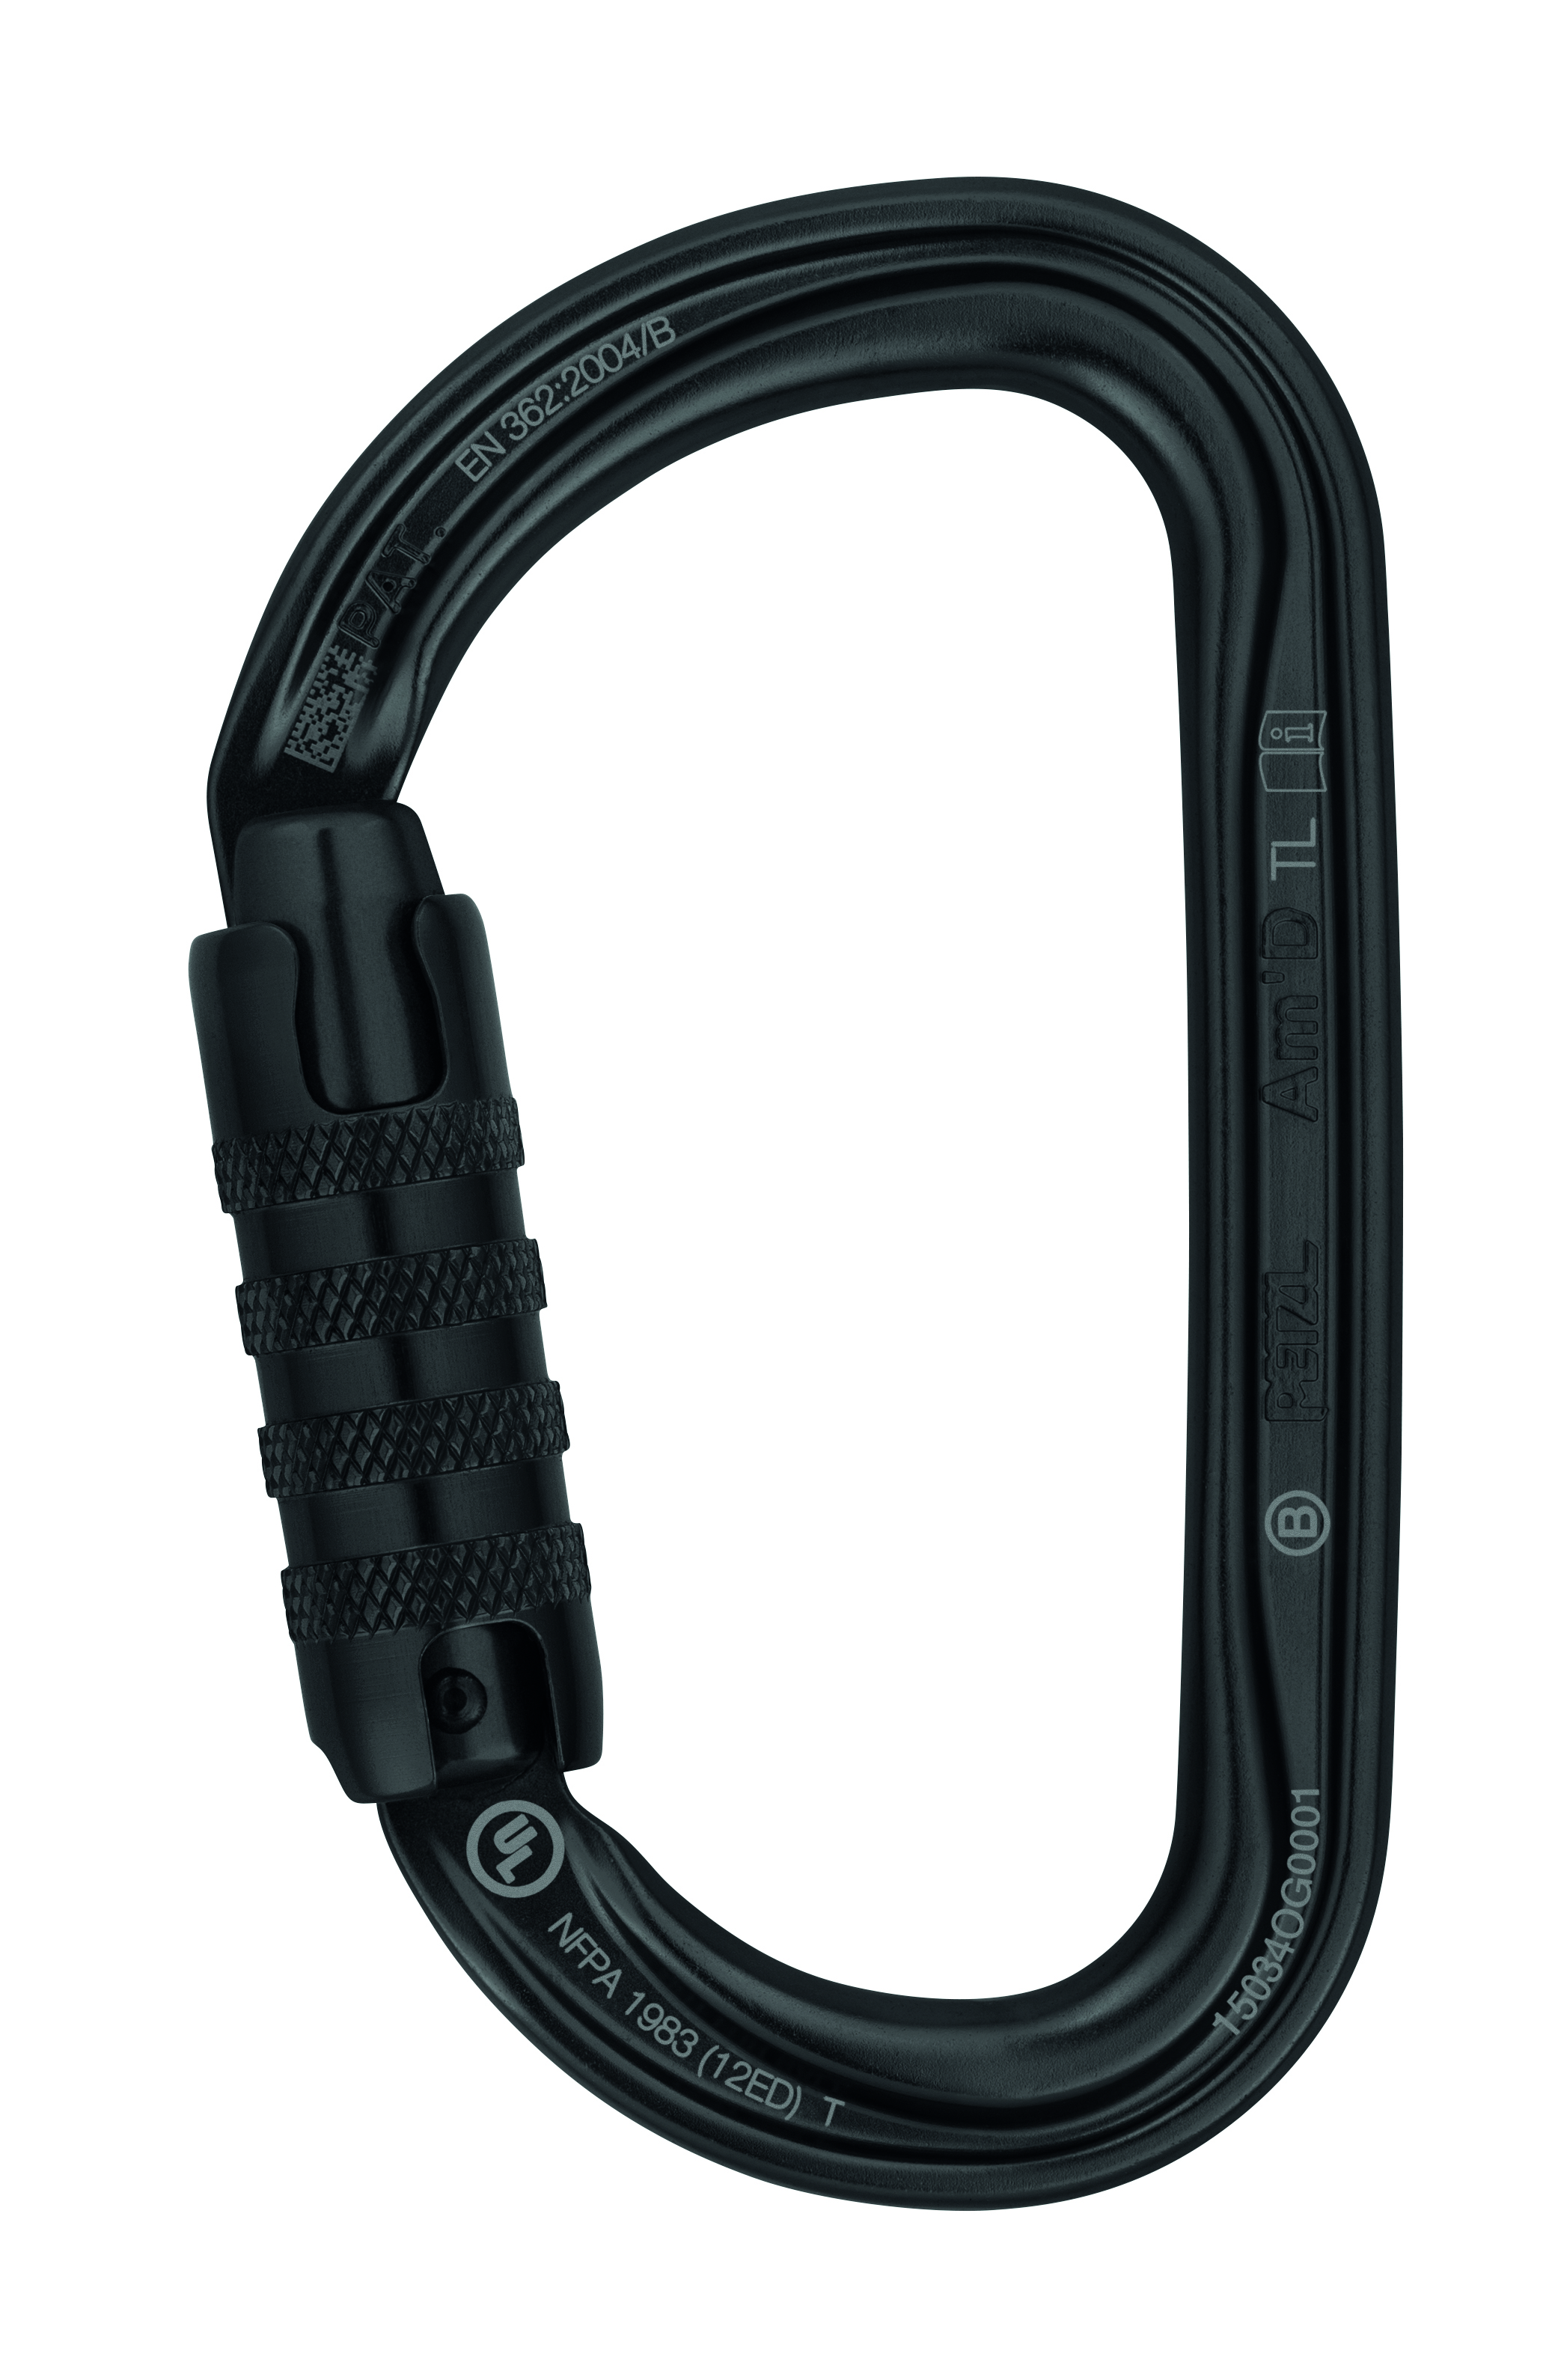 AM'D - TRIACT-LOCK - SORT - PETZL *NY*